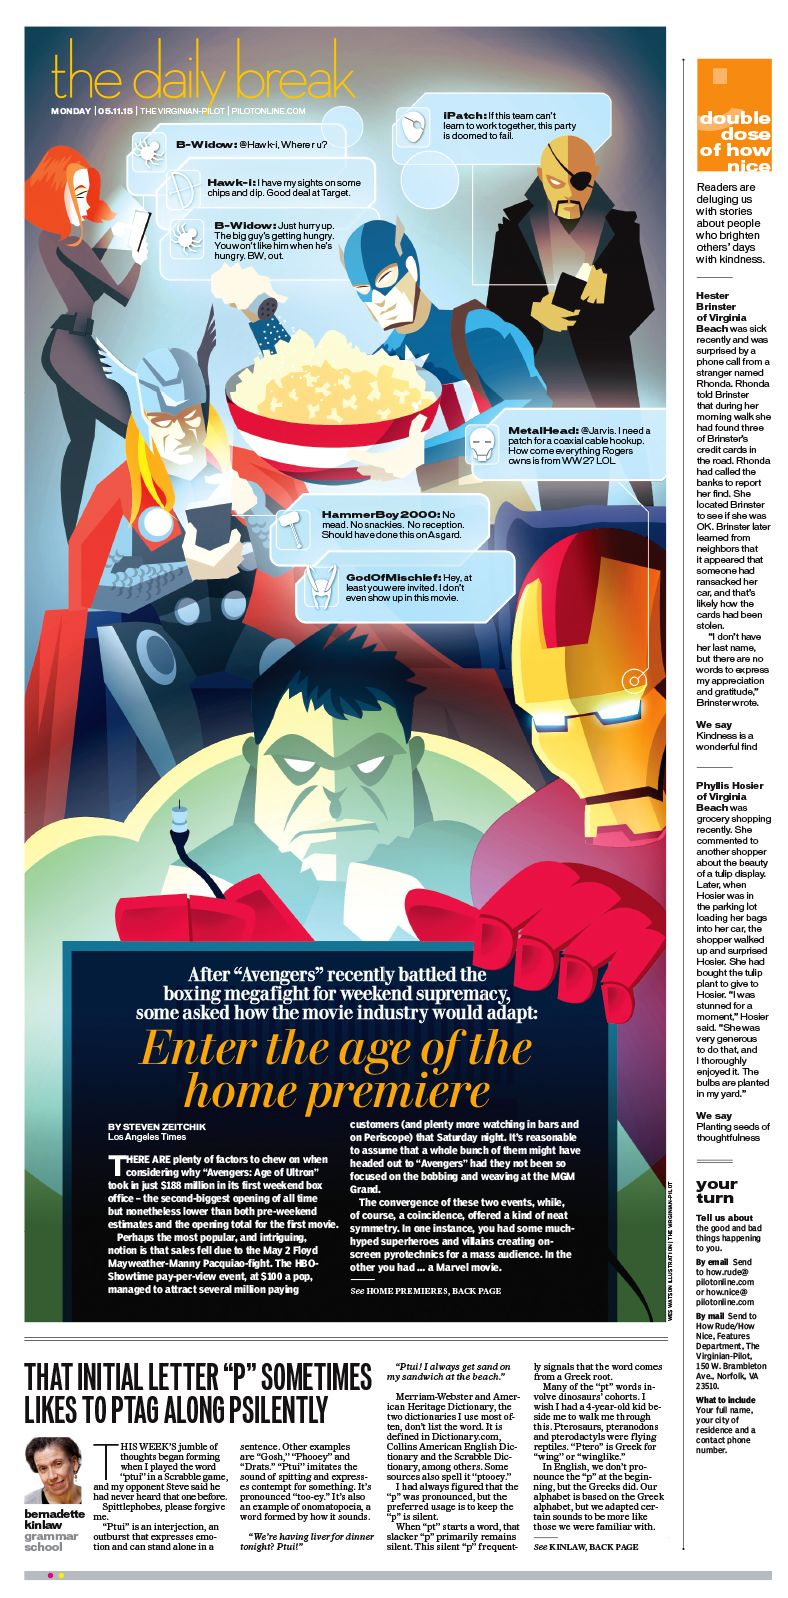 The Daily Break May 11 2015 The Avengers How Movie Industry Will Premiere Movies In The Future Vector Newspaper Design Newspaper Layout Editorial Design